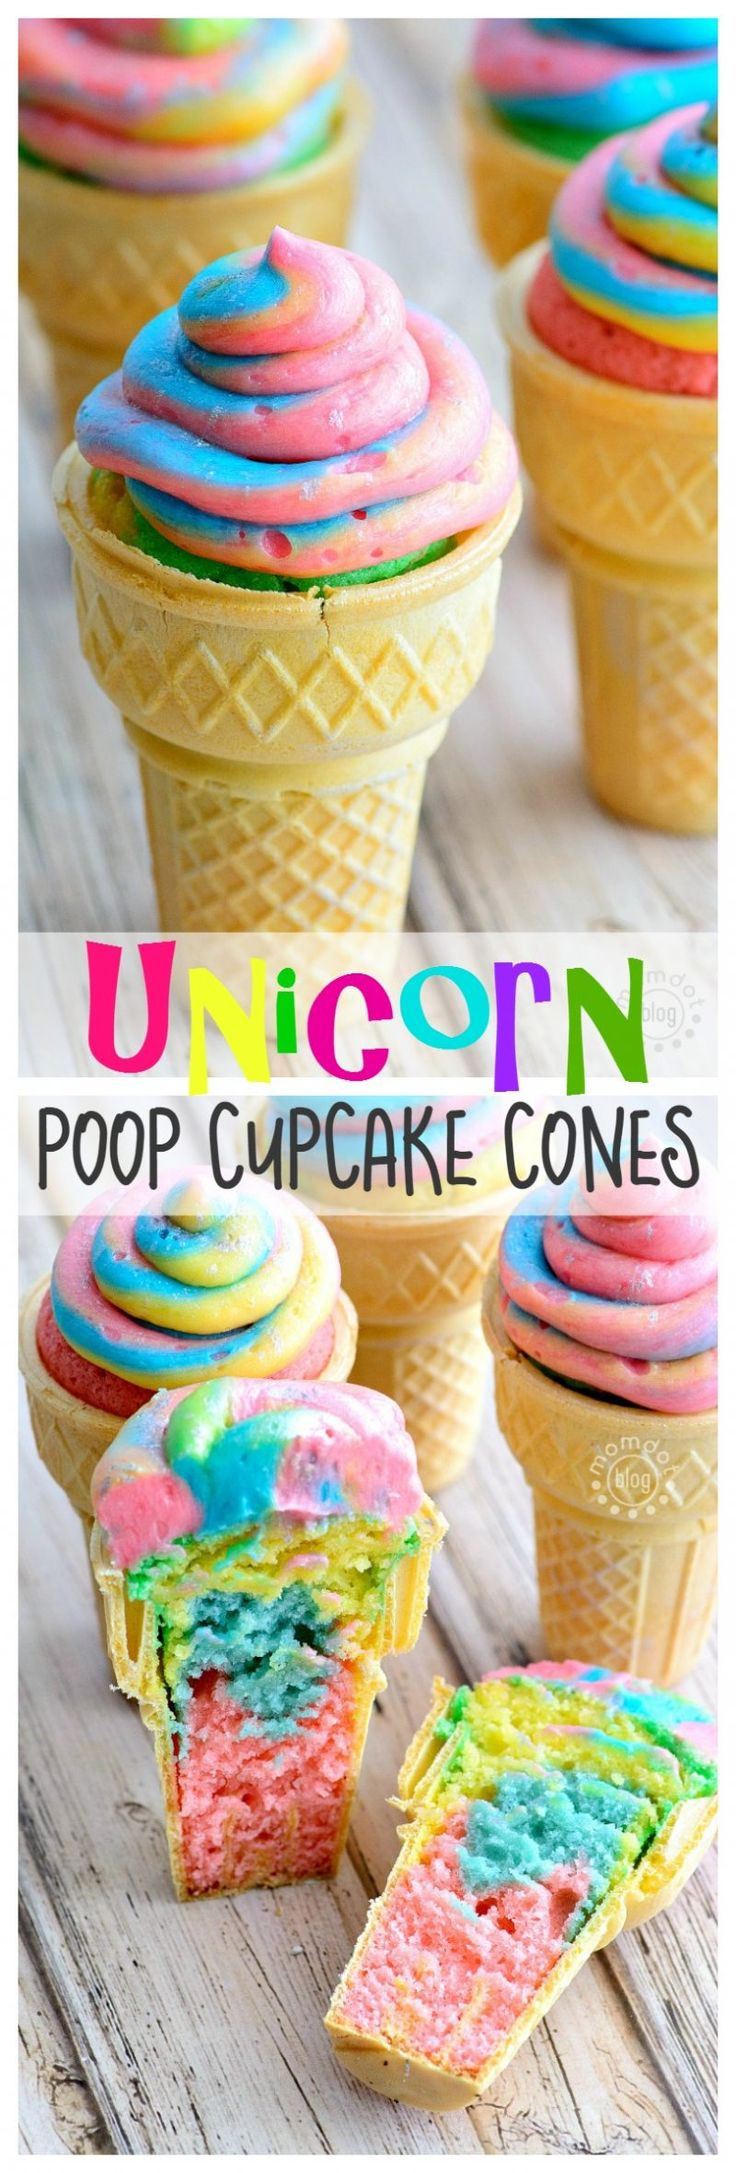 Unicorn Poop Cupcake Cones - learn how to make rainbow cupcake cones perfect for school parties. SO FUN. Get recipe and how to swirl frosting here now!